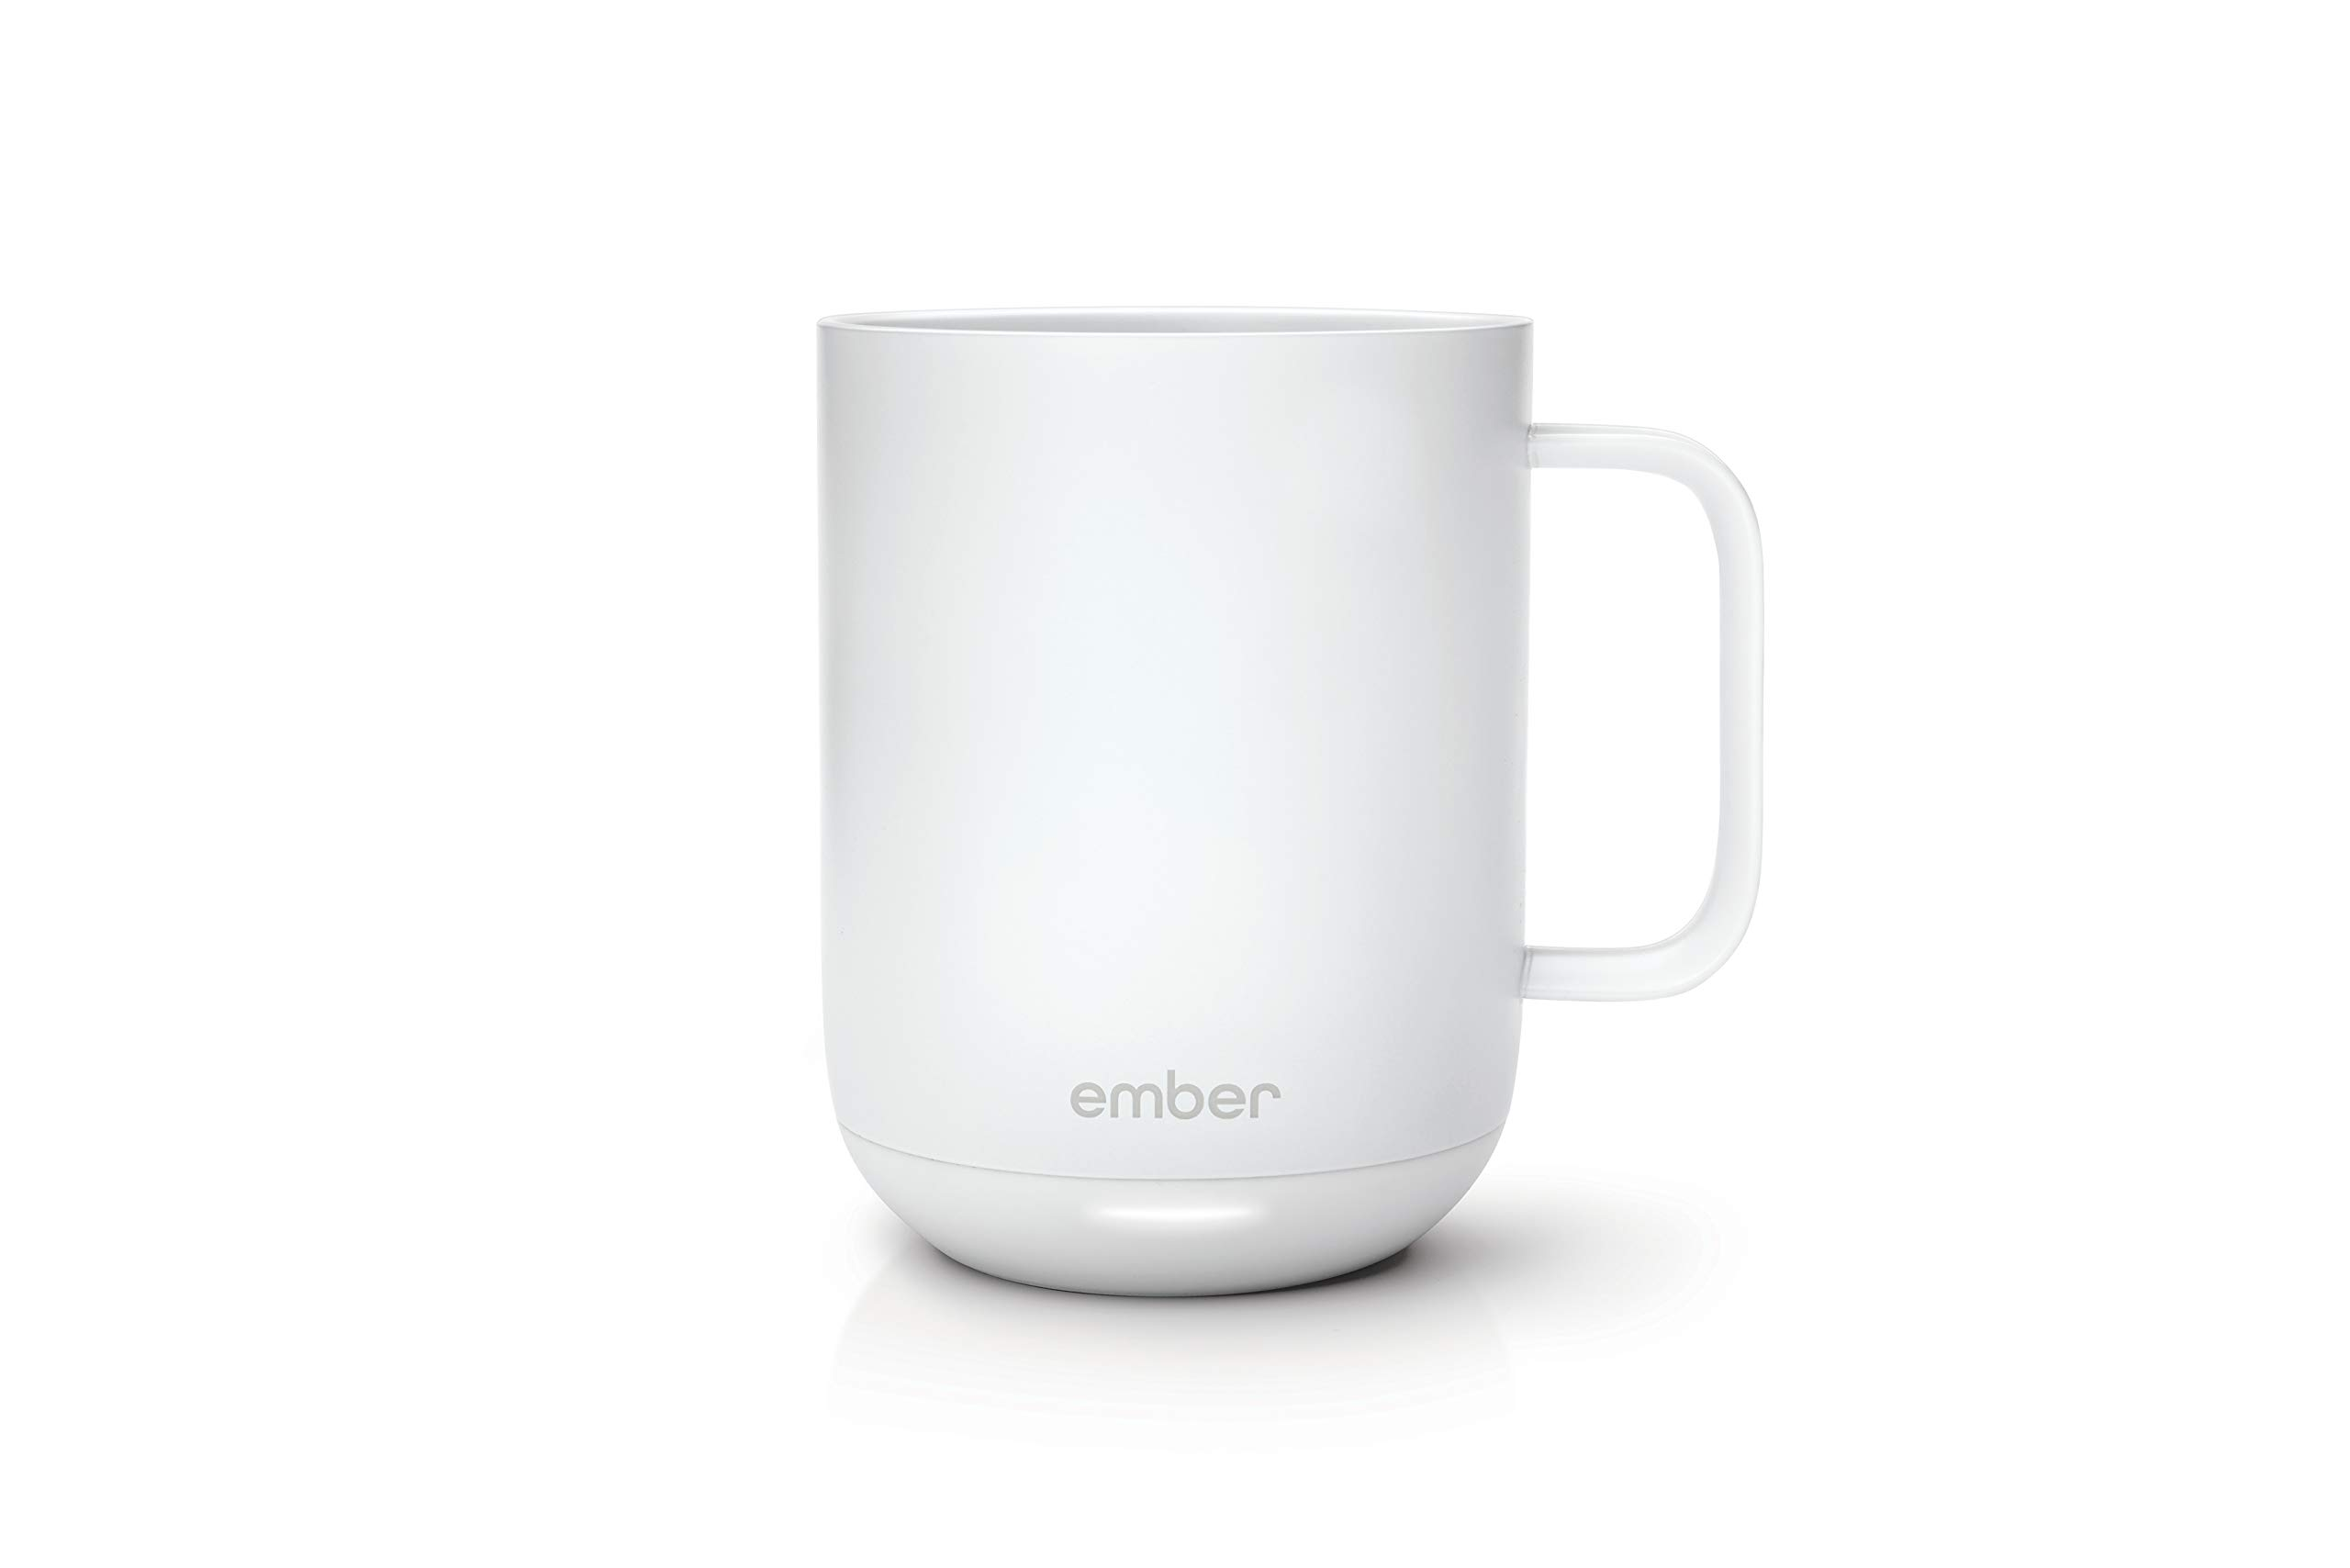 Ember Temperature Control Smart Mug, 10 Ounce, 1-hr Battery Life, White - App Controlled Heated Coffee Mug by Ember